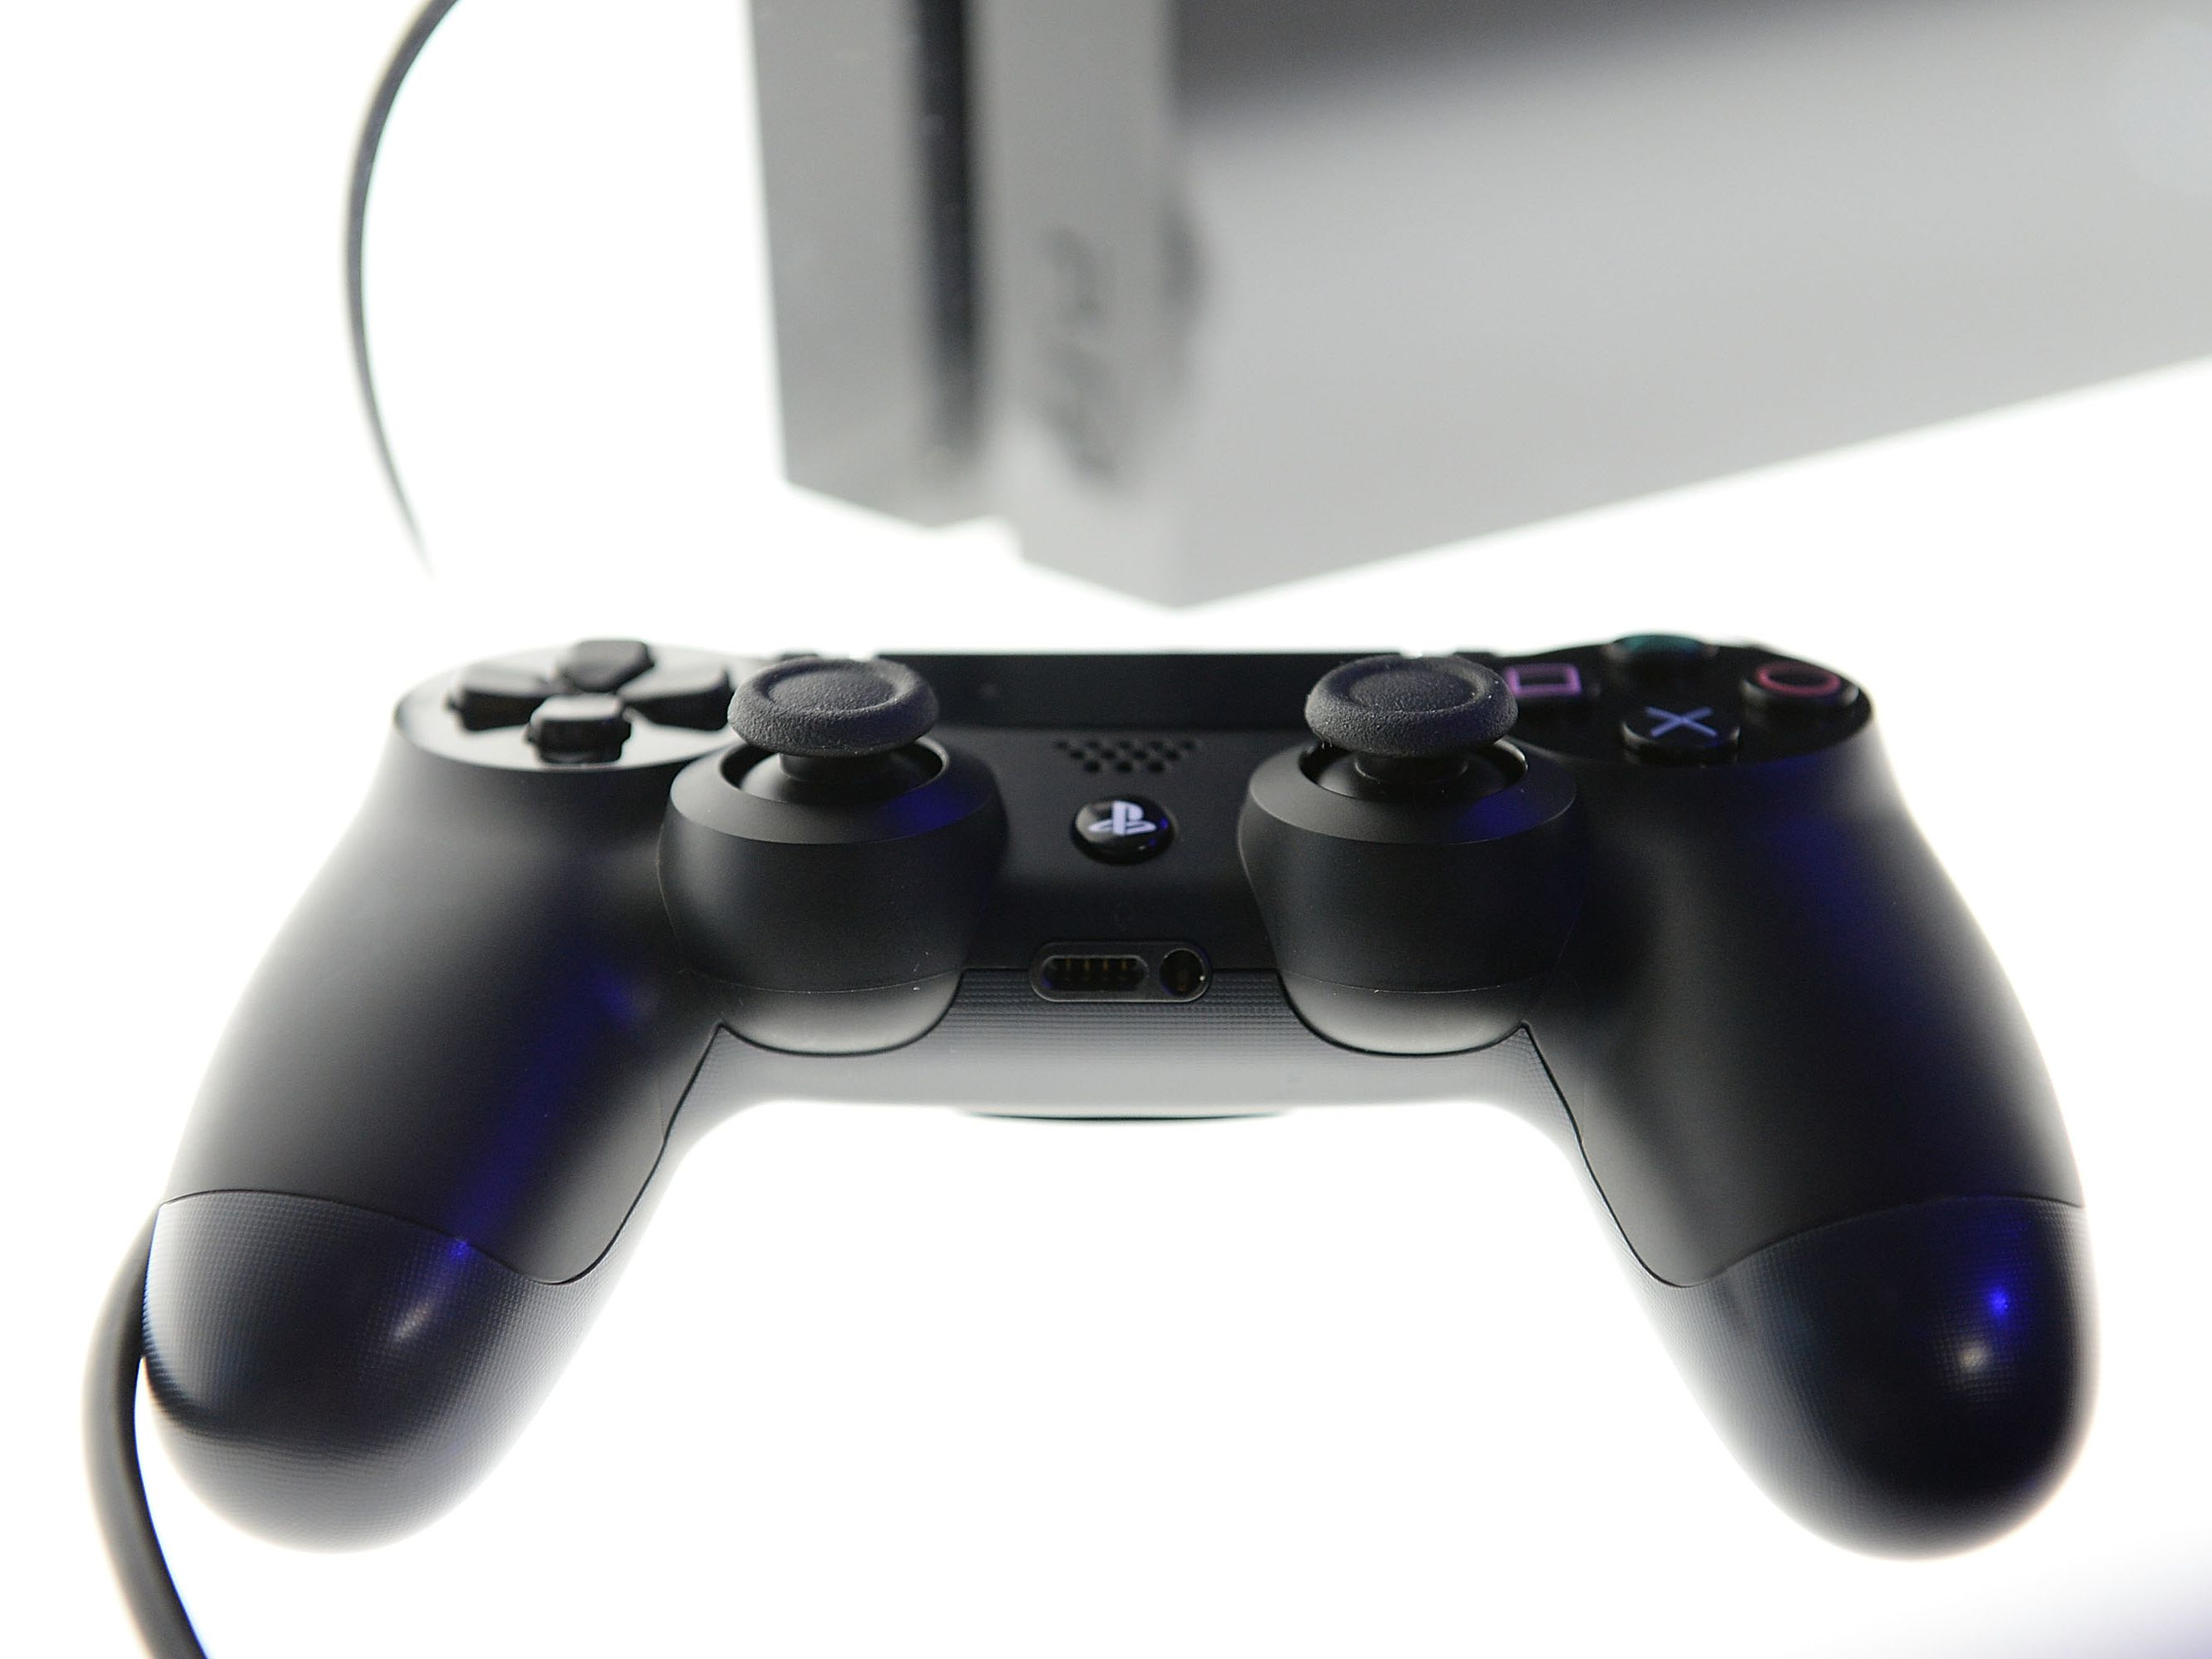 How to Reset a DualShock PS4 Controller